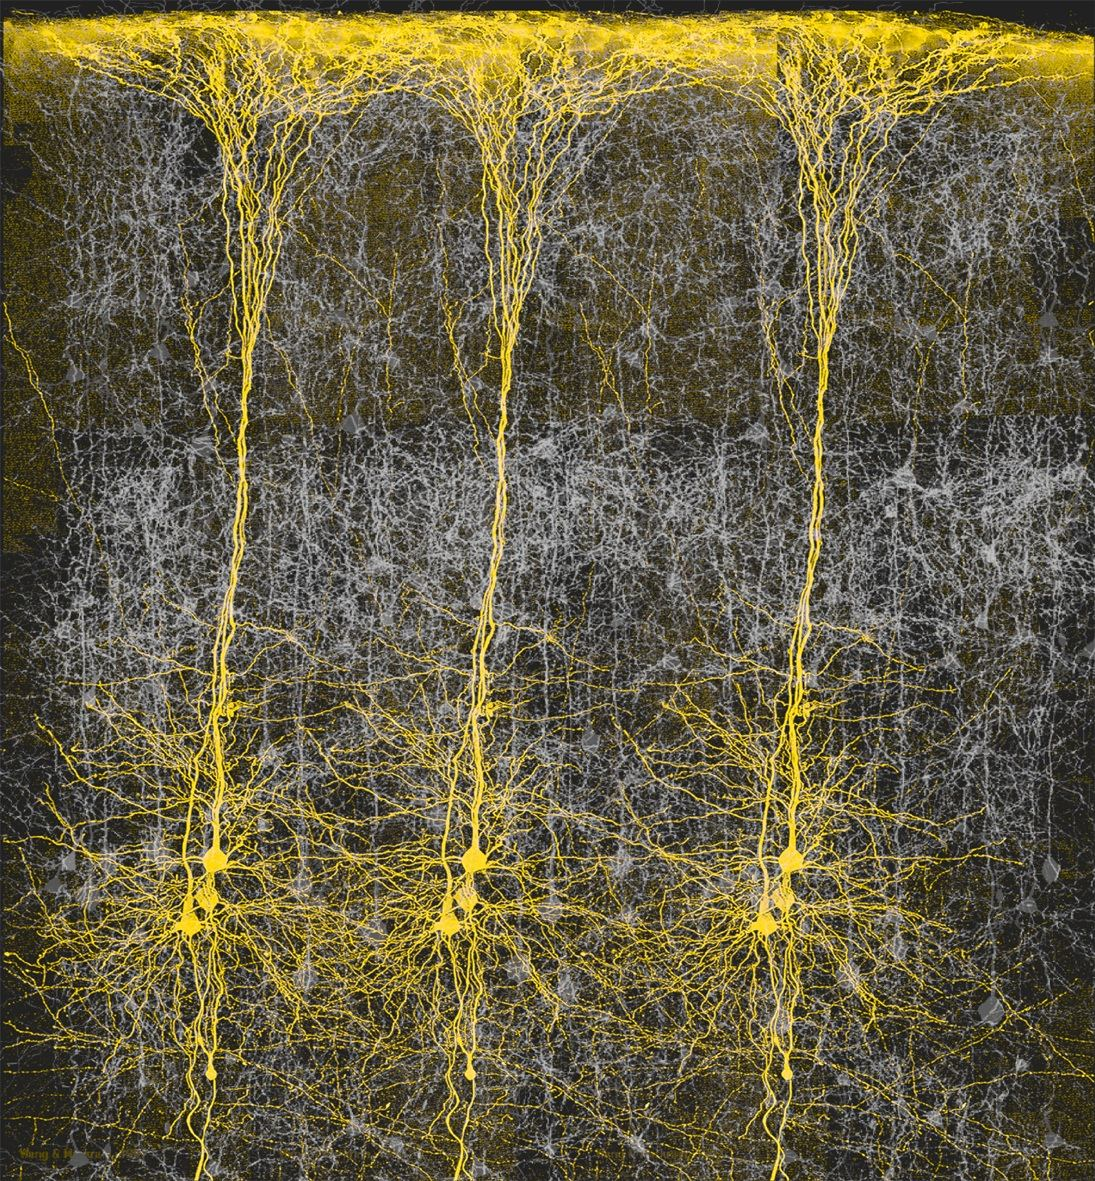 neuronal structure of cortex